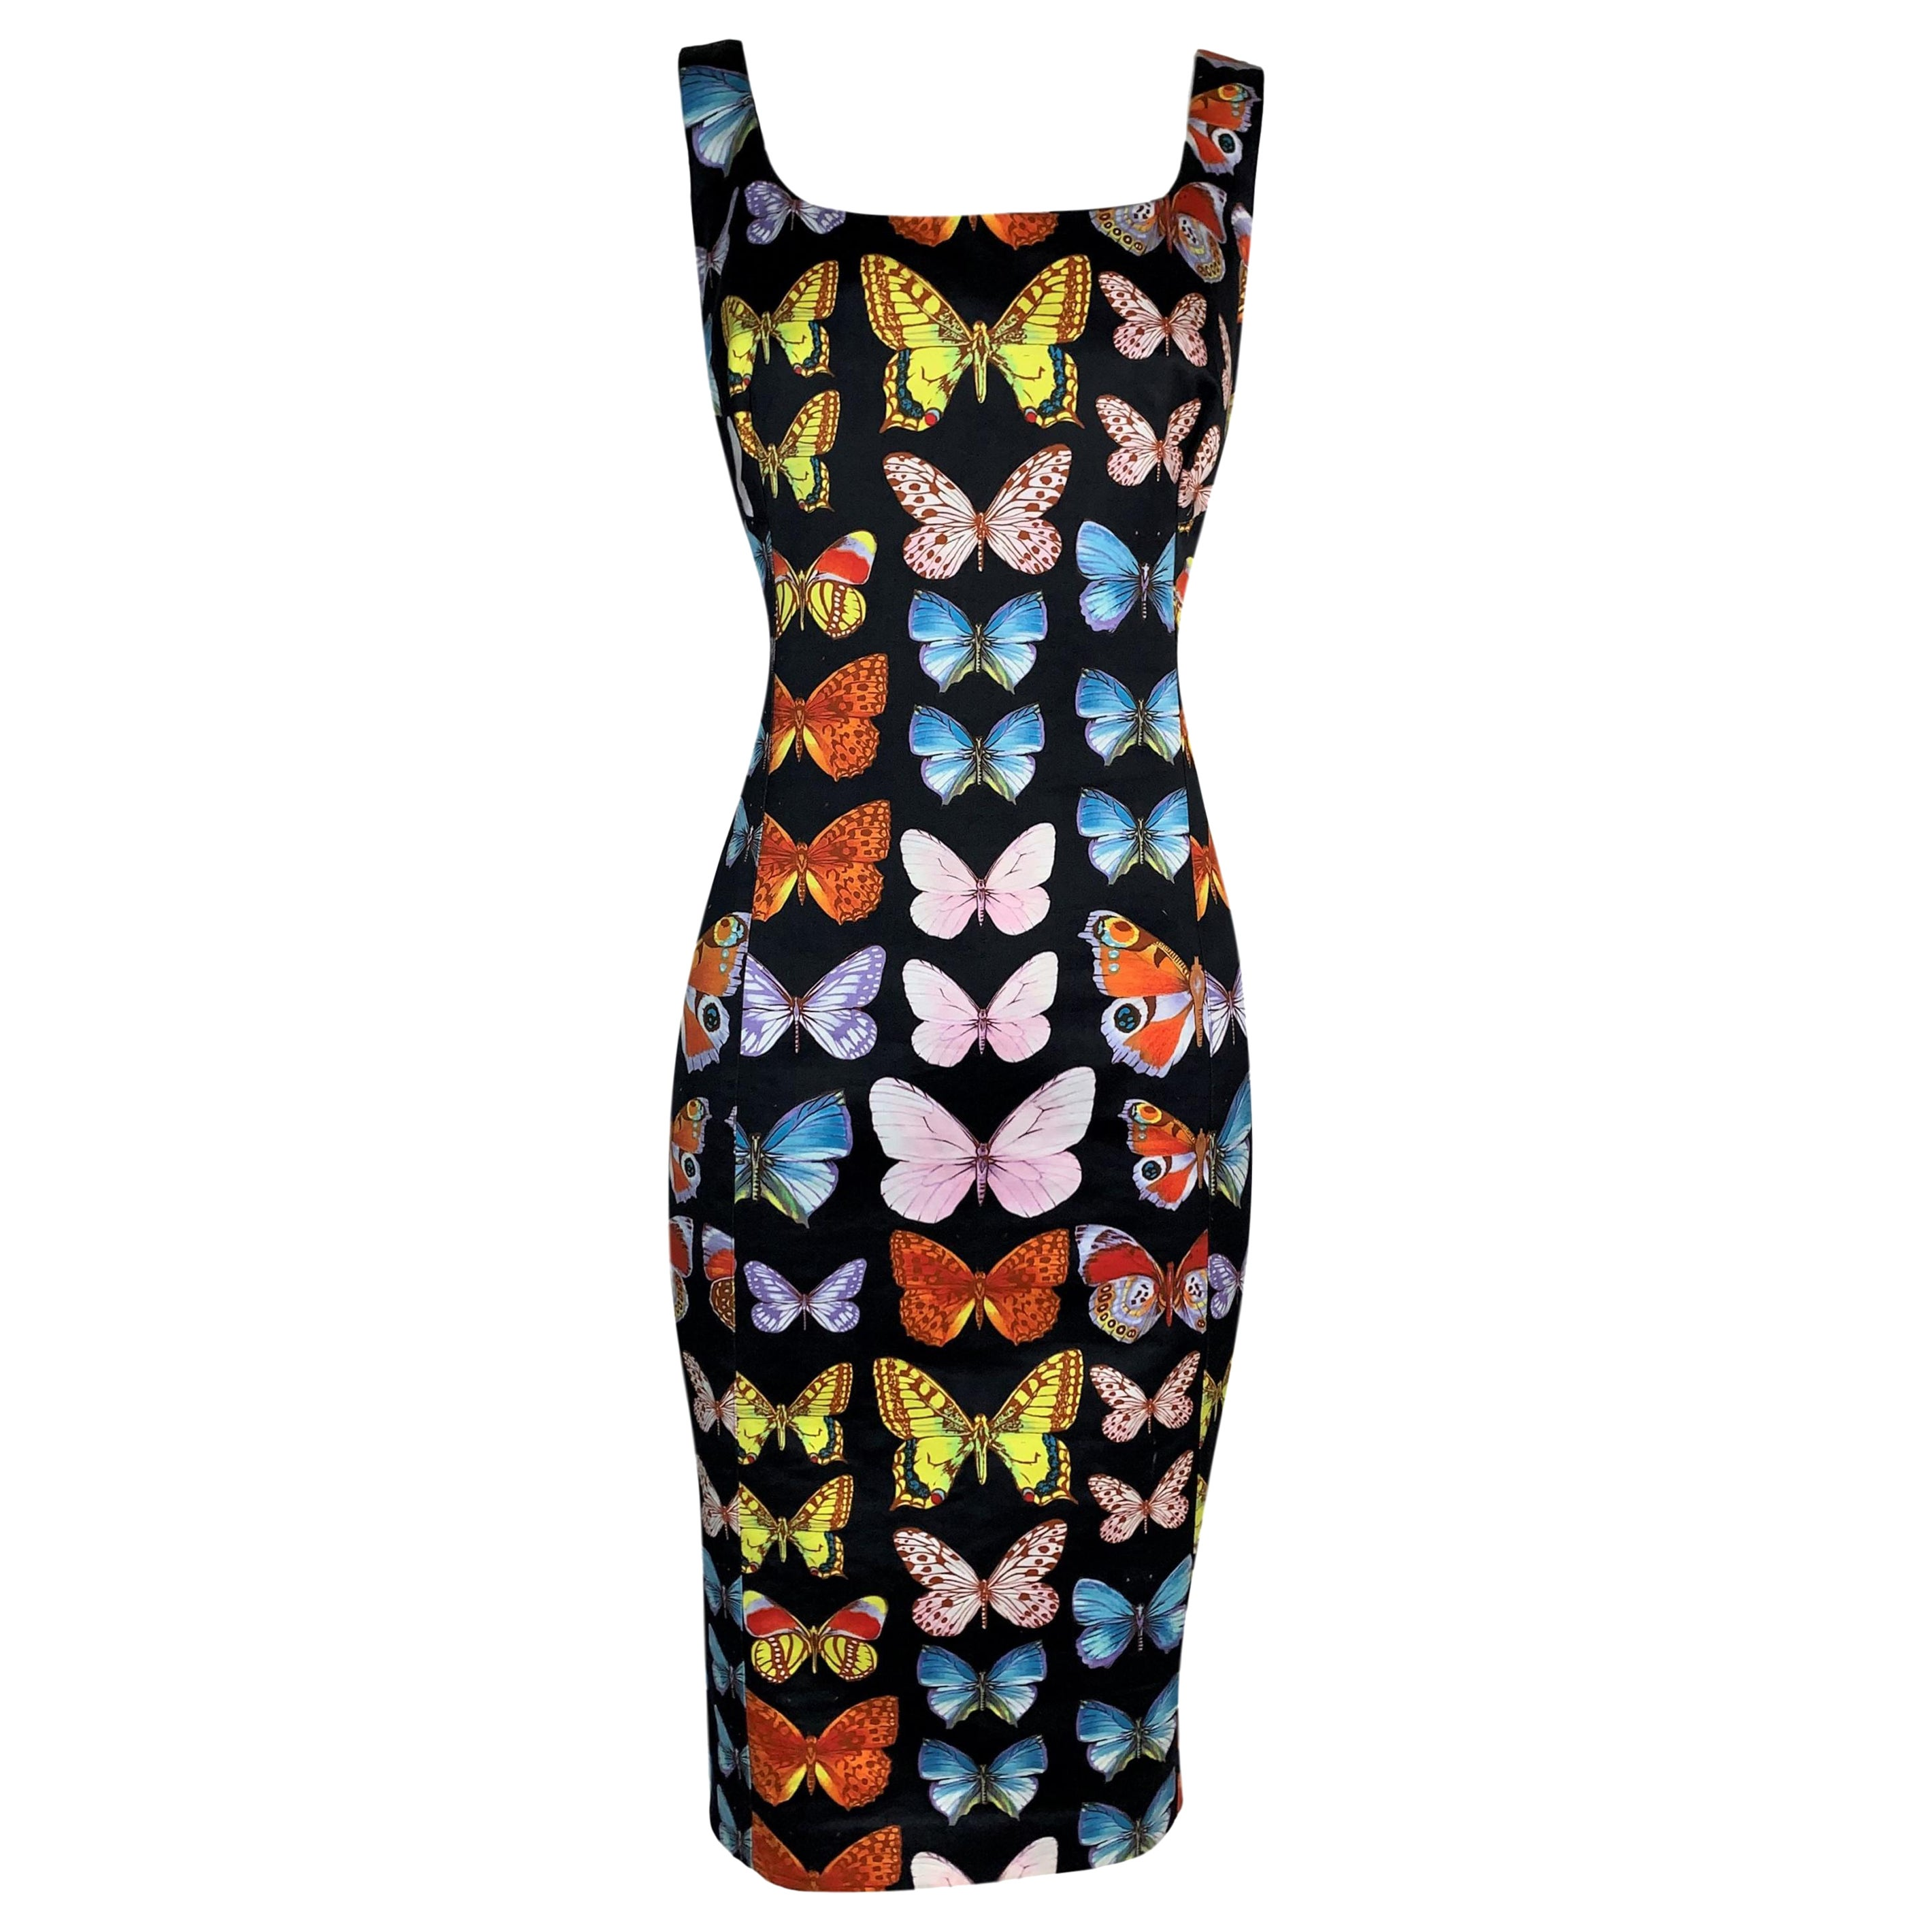 S/S 1995 Gianni Versace Runway Black Butterfly Dress